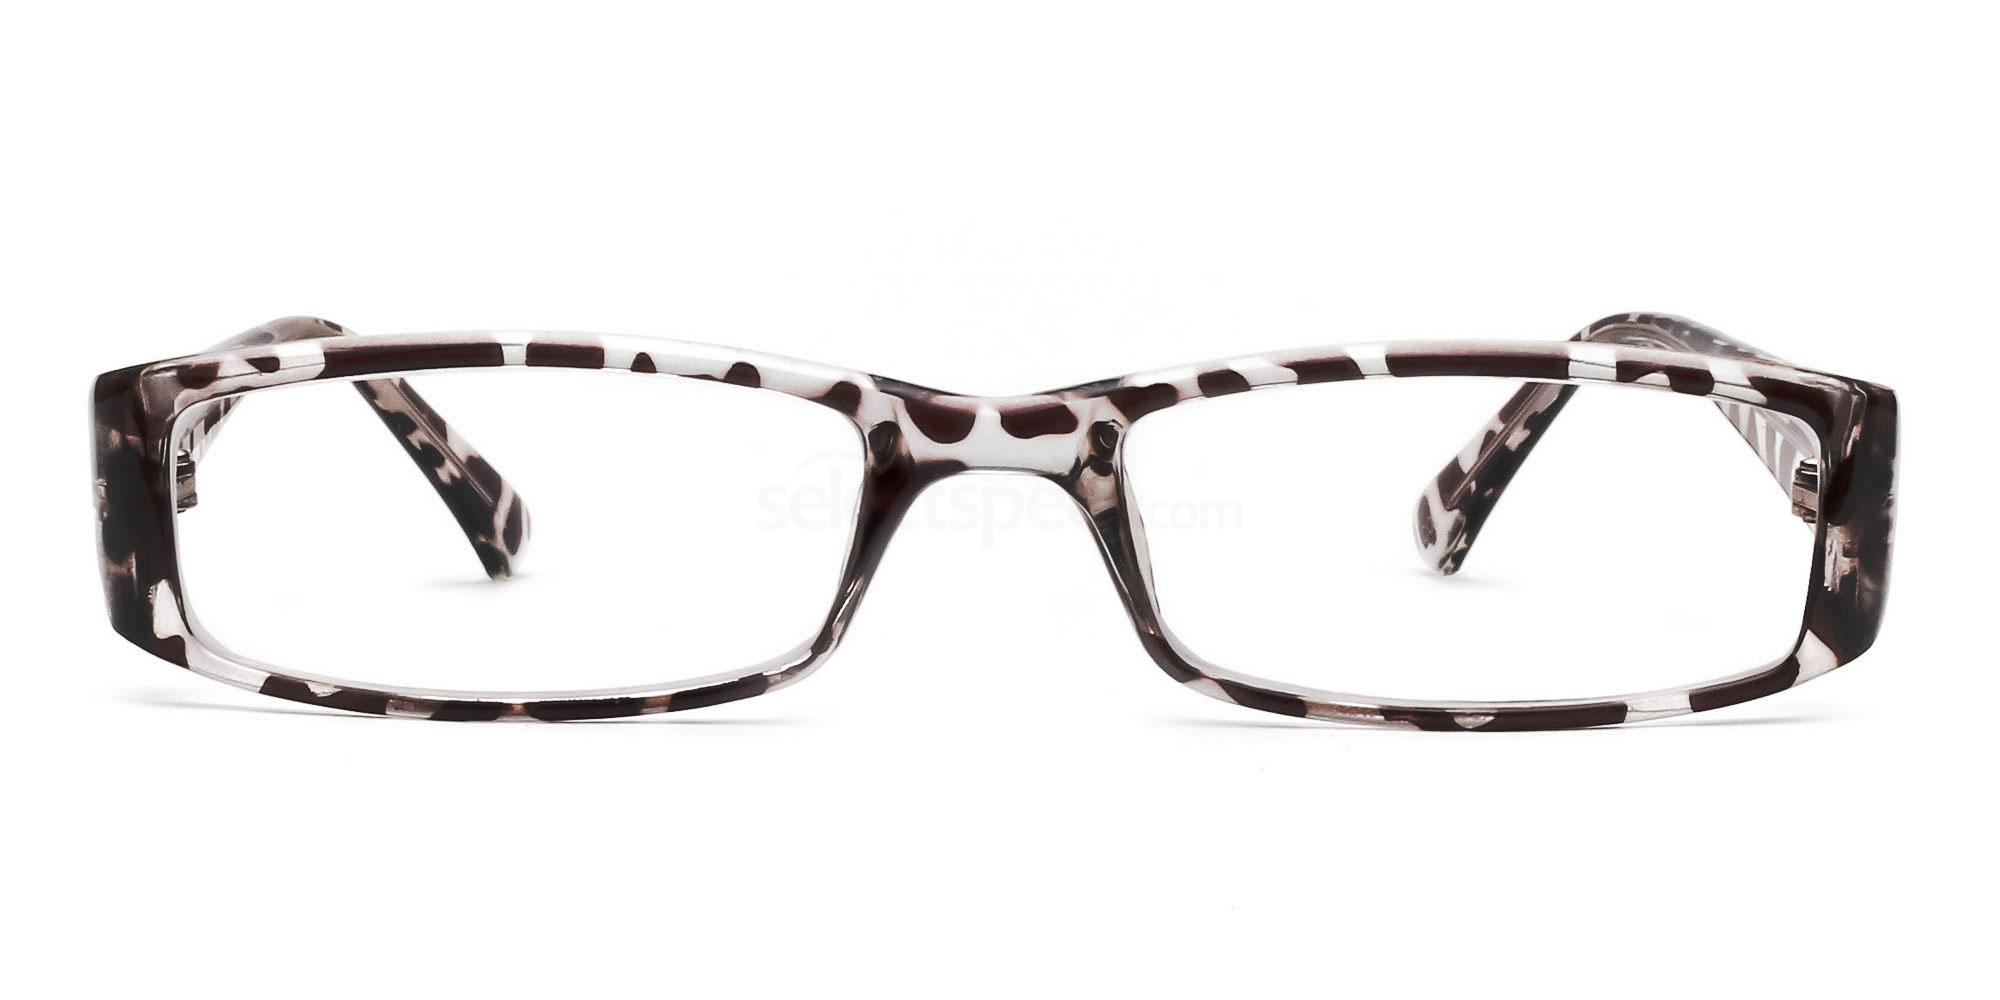 C03 P2251 - Animal Print Glasses, Savannah